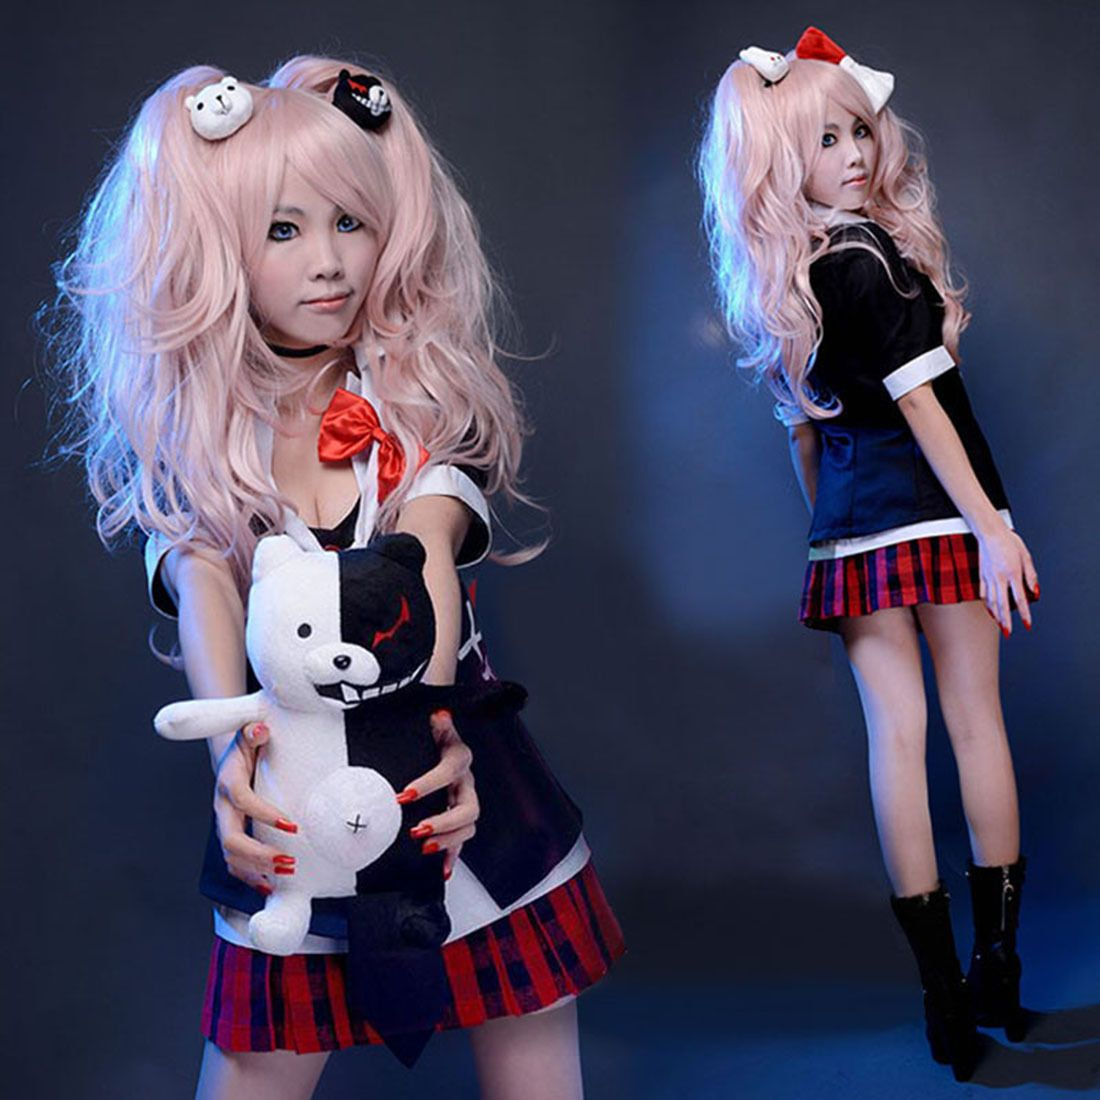 Details about cute junko enoshima cosplay costume